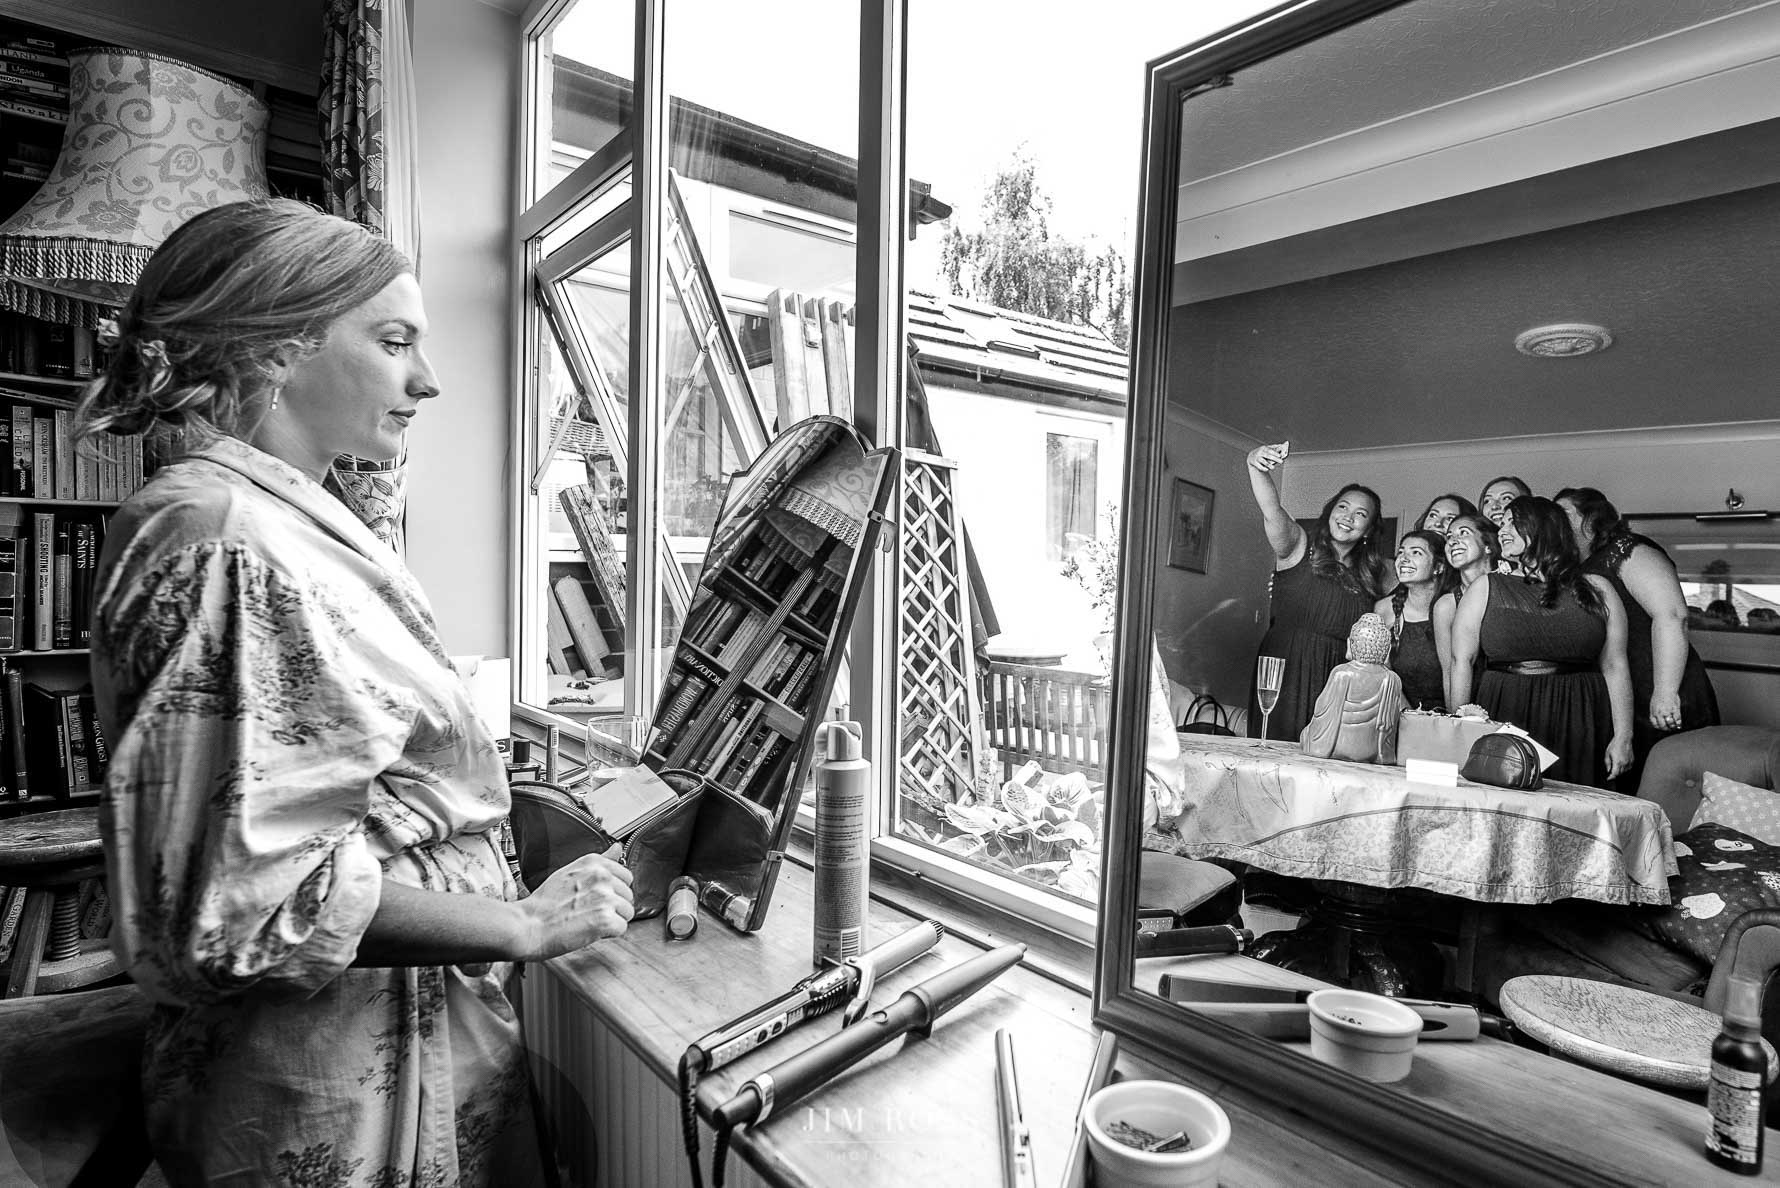 Bridesmaids ready in mirror while bride does makeup